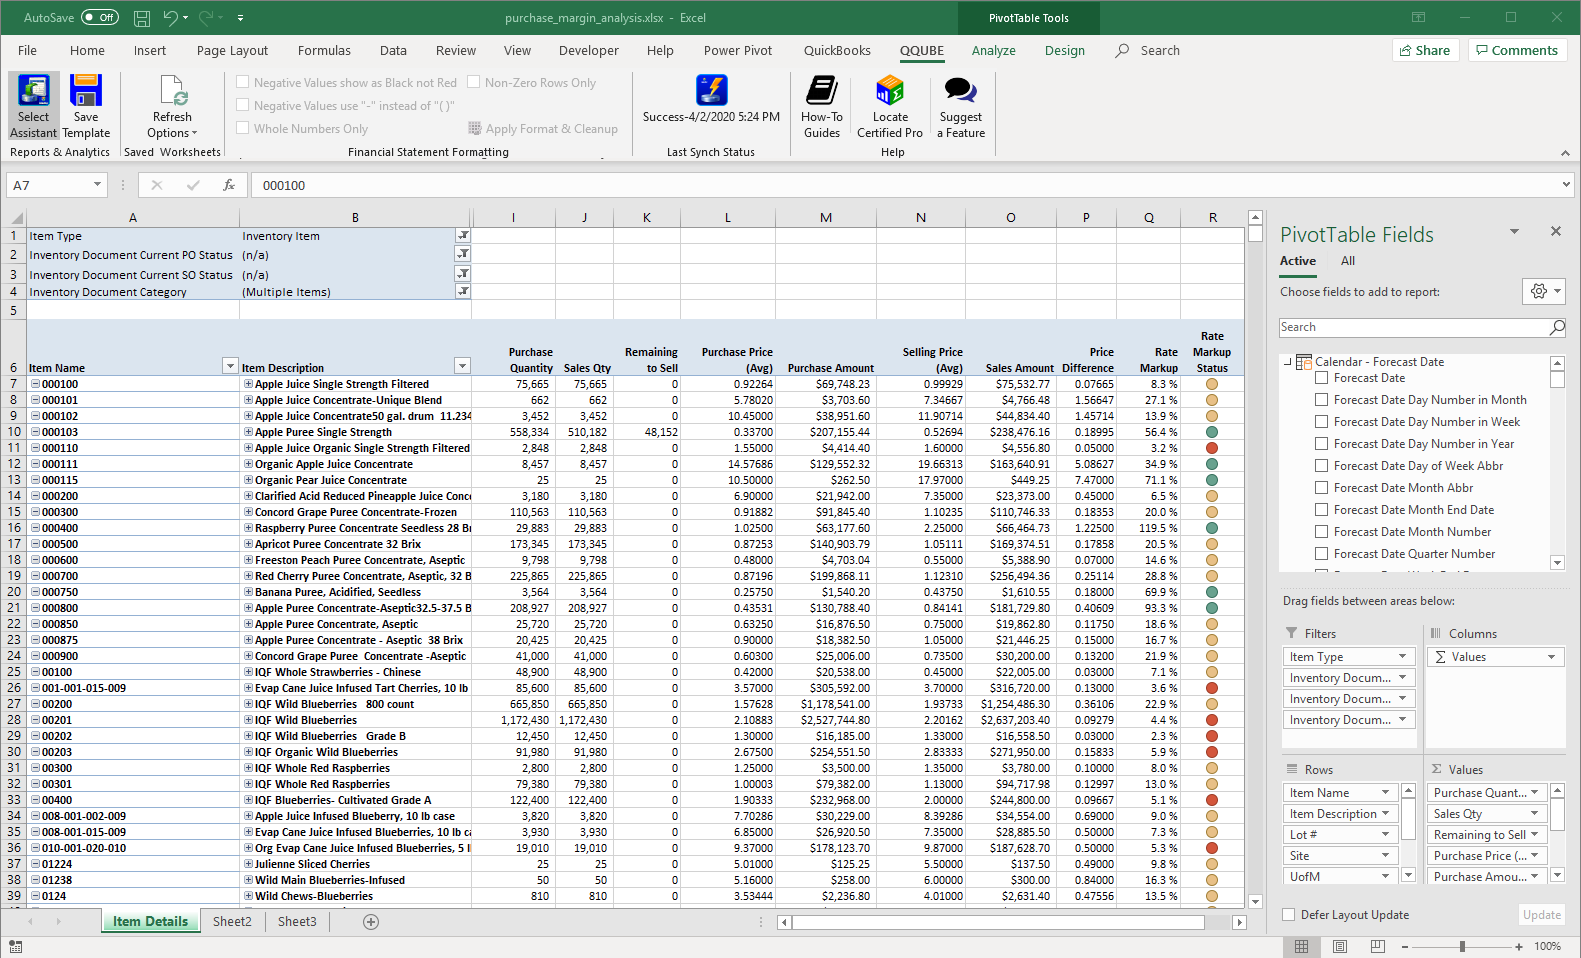 QuickBooks Inventory Margin Analysis using QQube and Excel PowerPivot